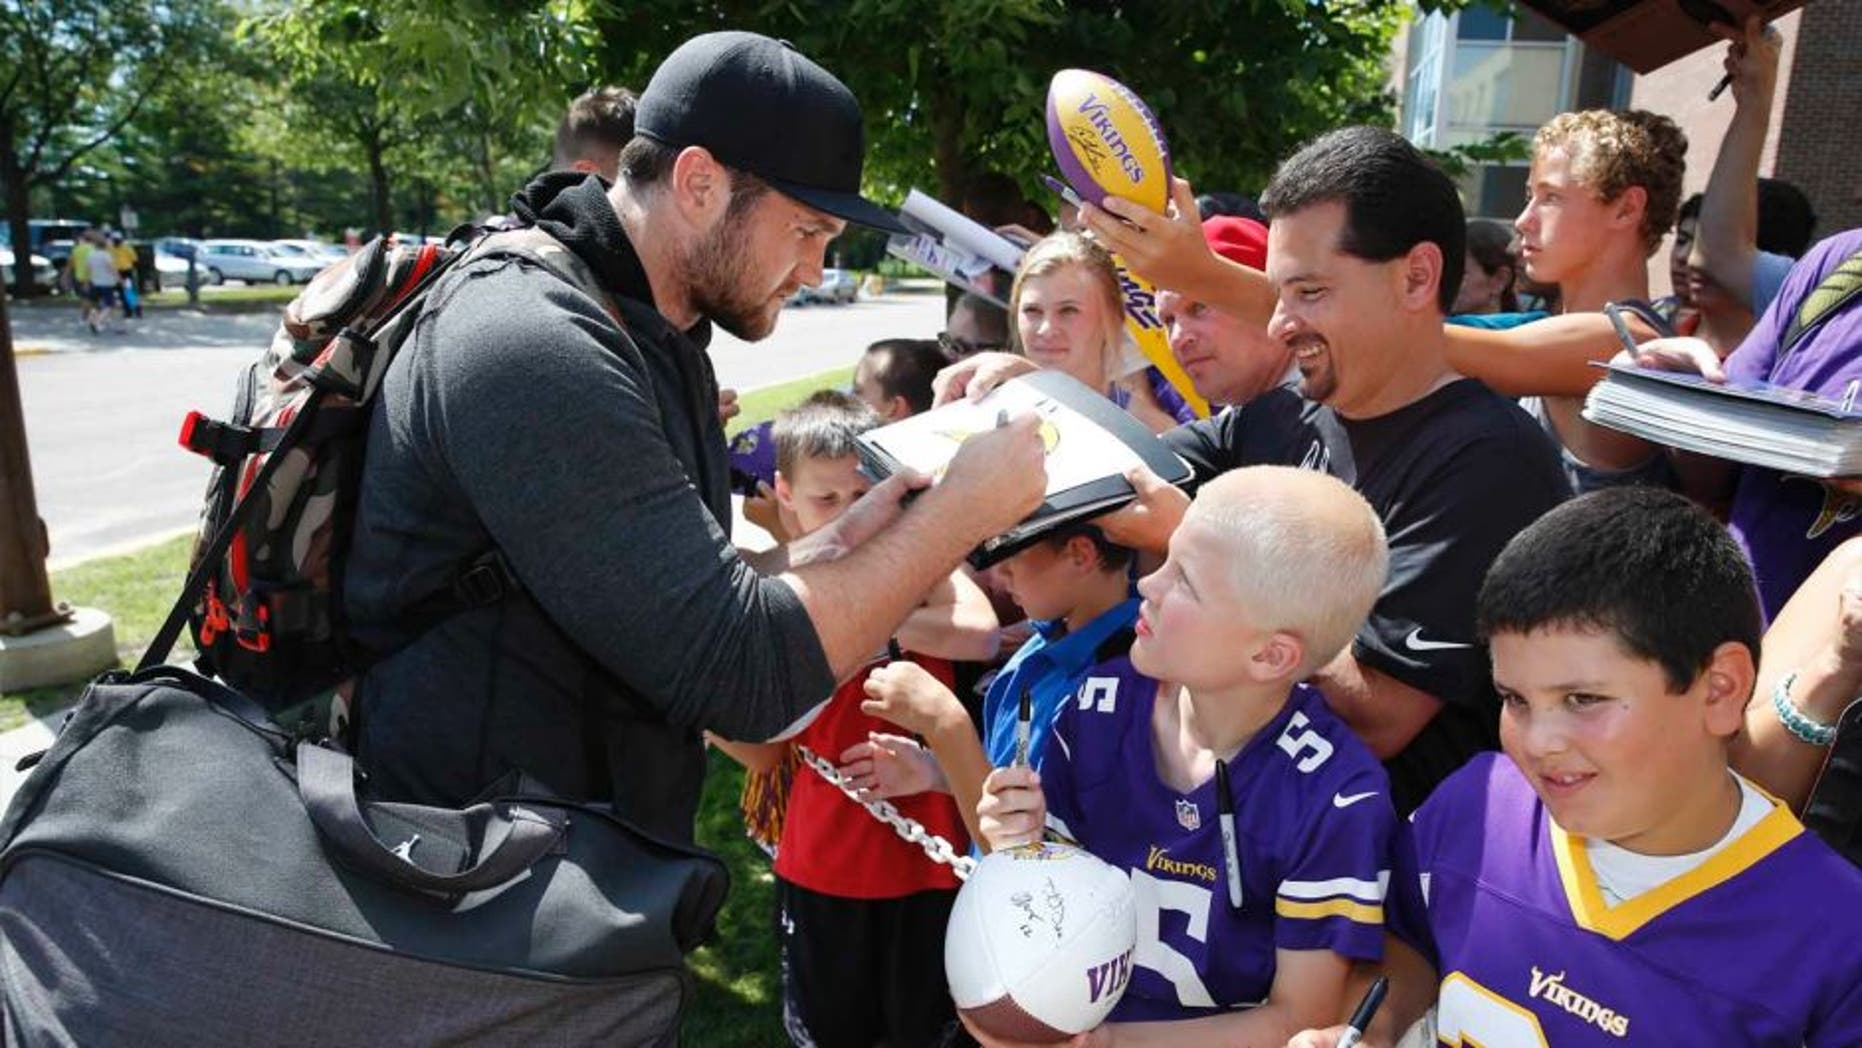 Minnesota Vikings linebacker Casey Matthews signs autographs as he reports to training camp on the campus of Minnesota State University, Saturday, July 25, 2015, in Mankato.